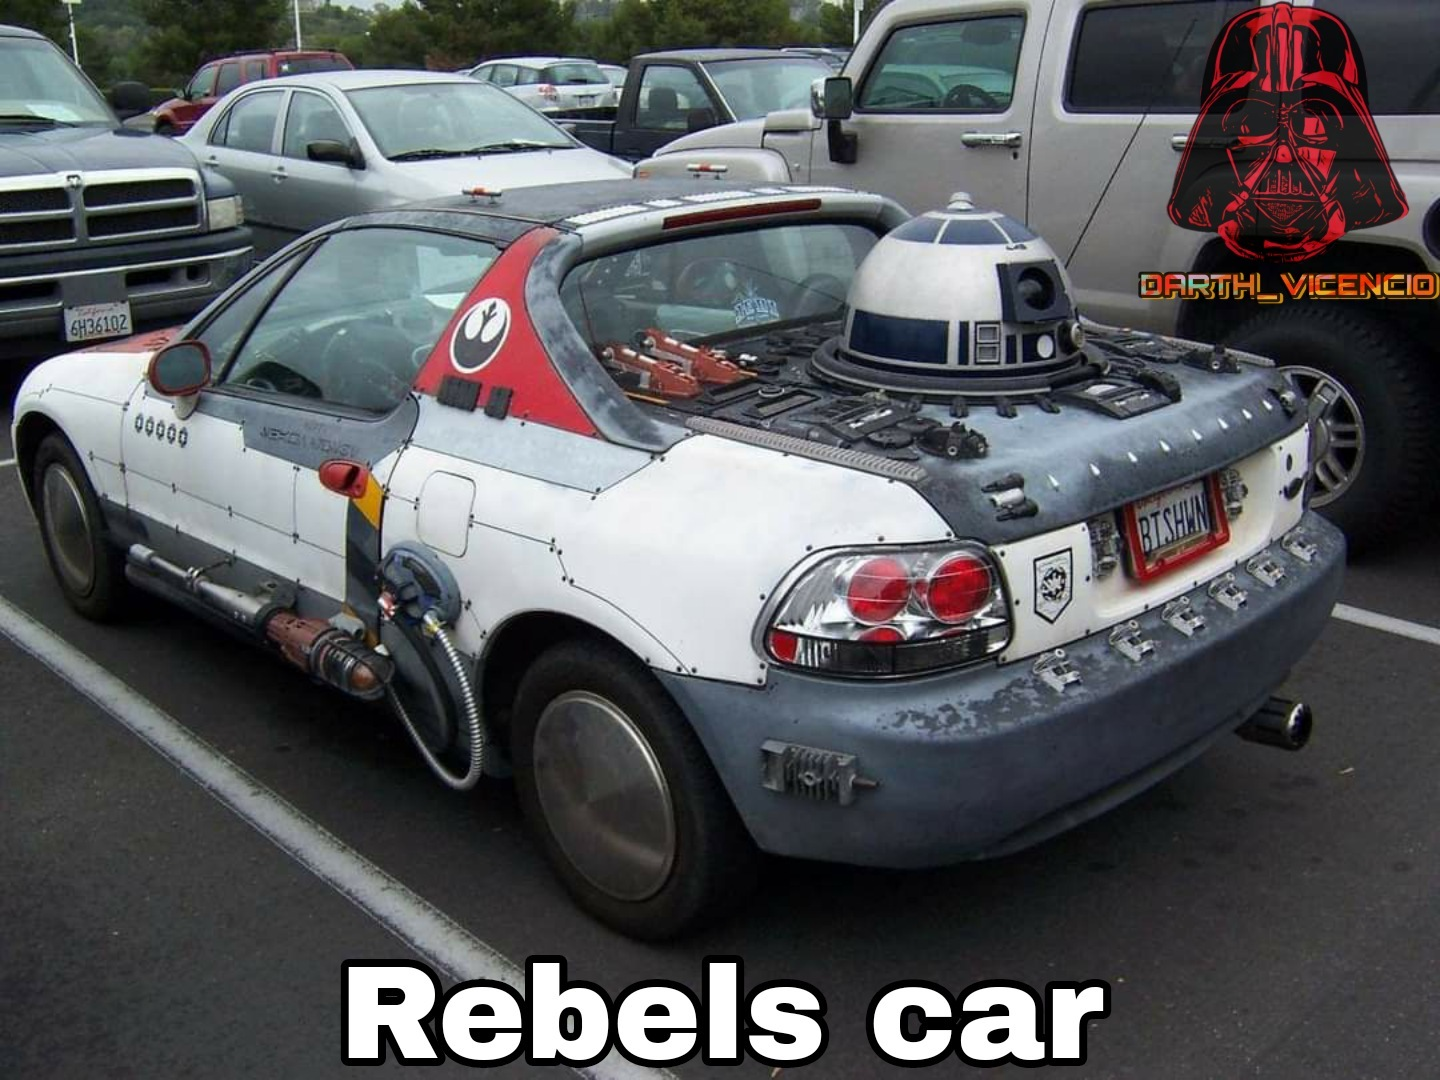 Rebels car - meme